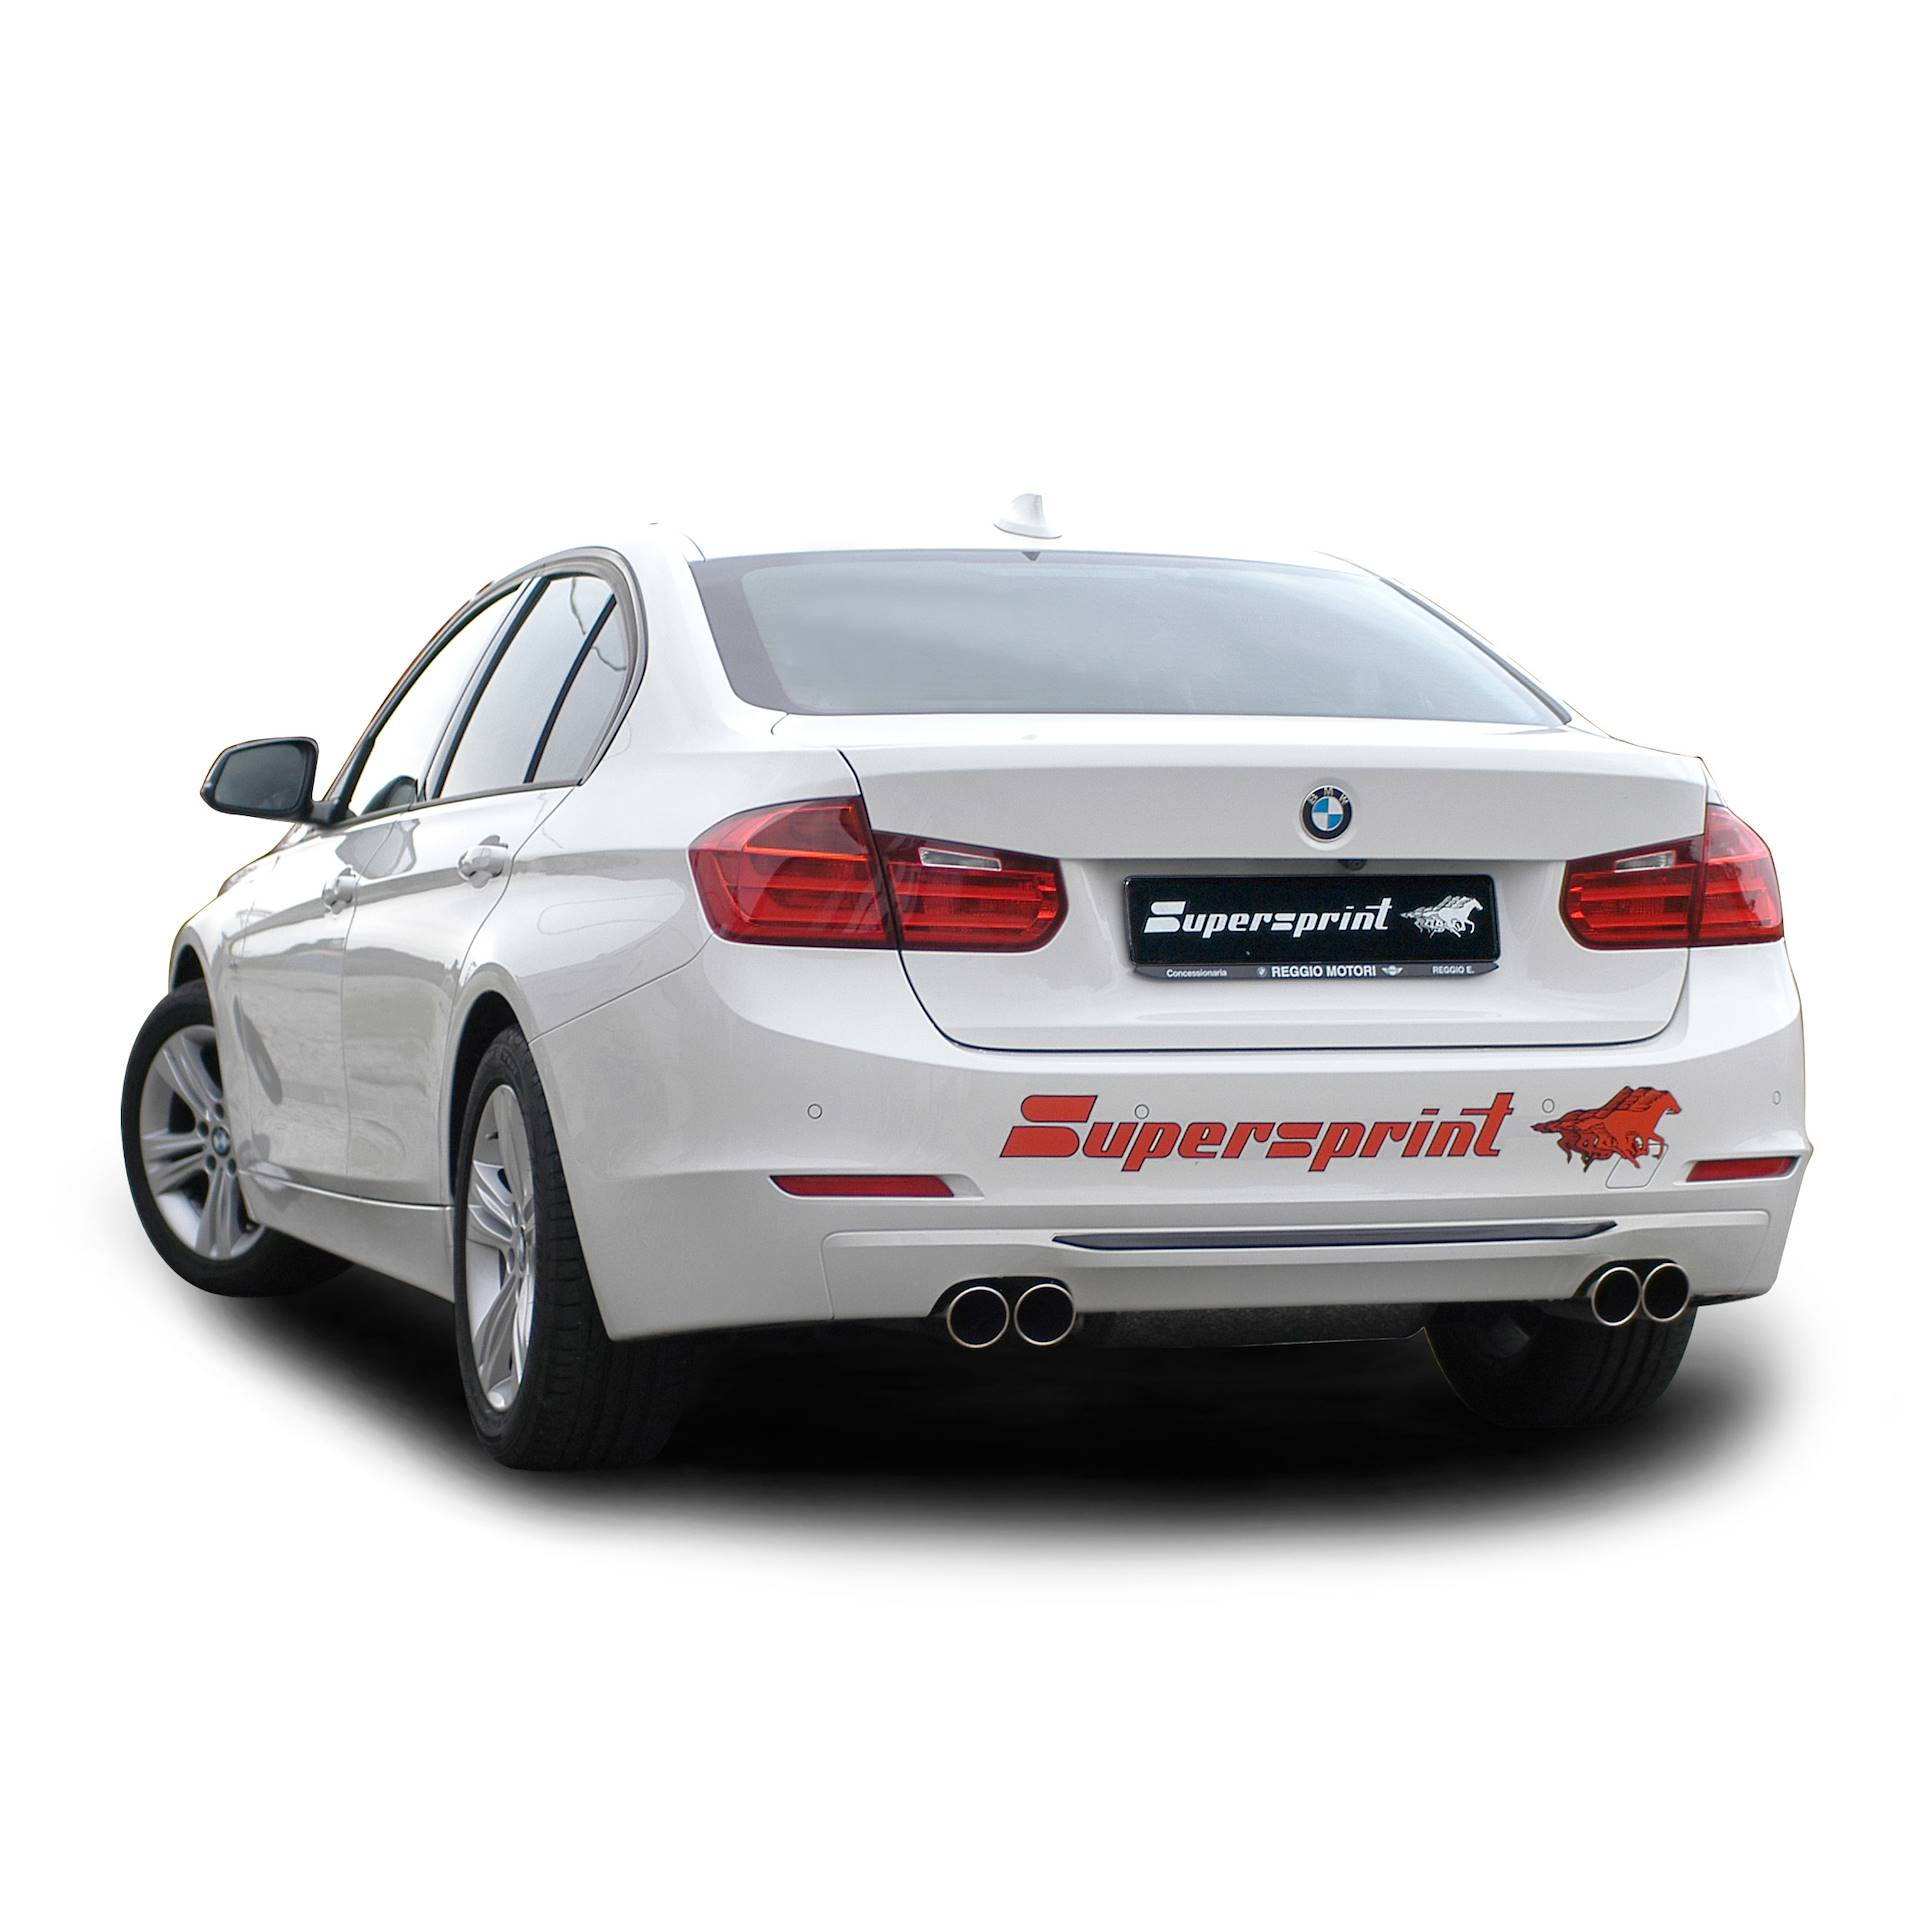 BMW - BMW F30 (Berline) 320i xDrive 2.0T (184 Hp) 2012 ->